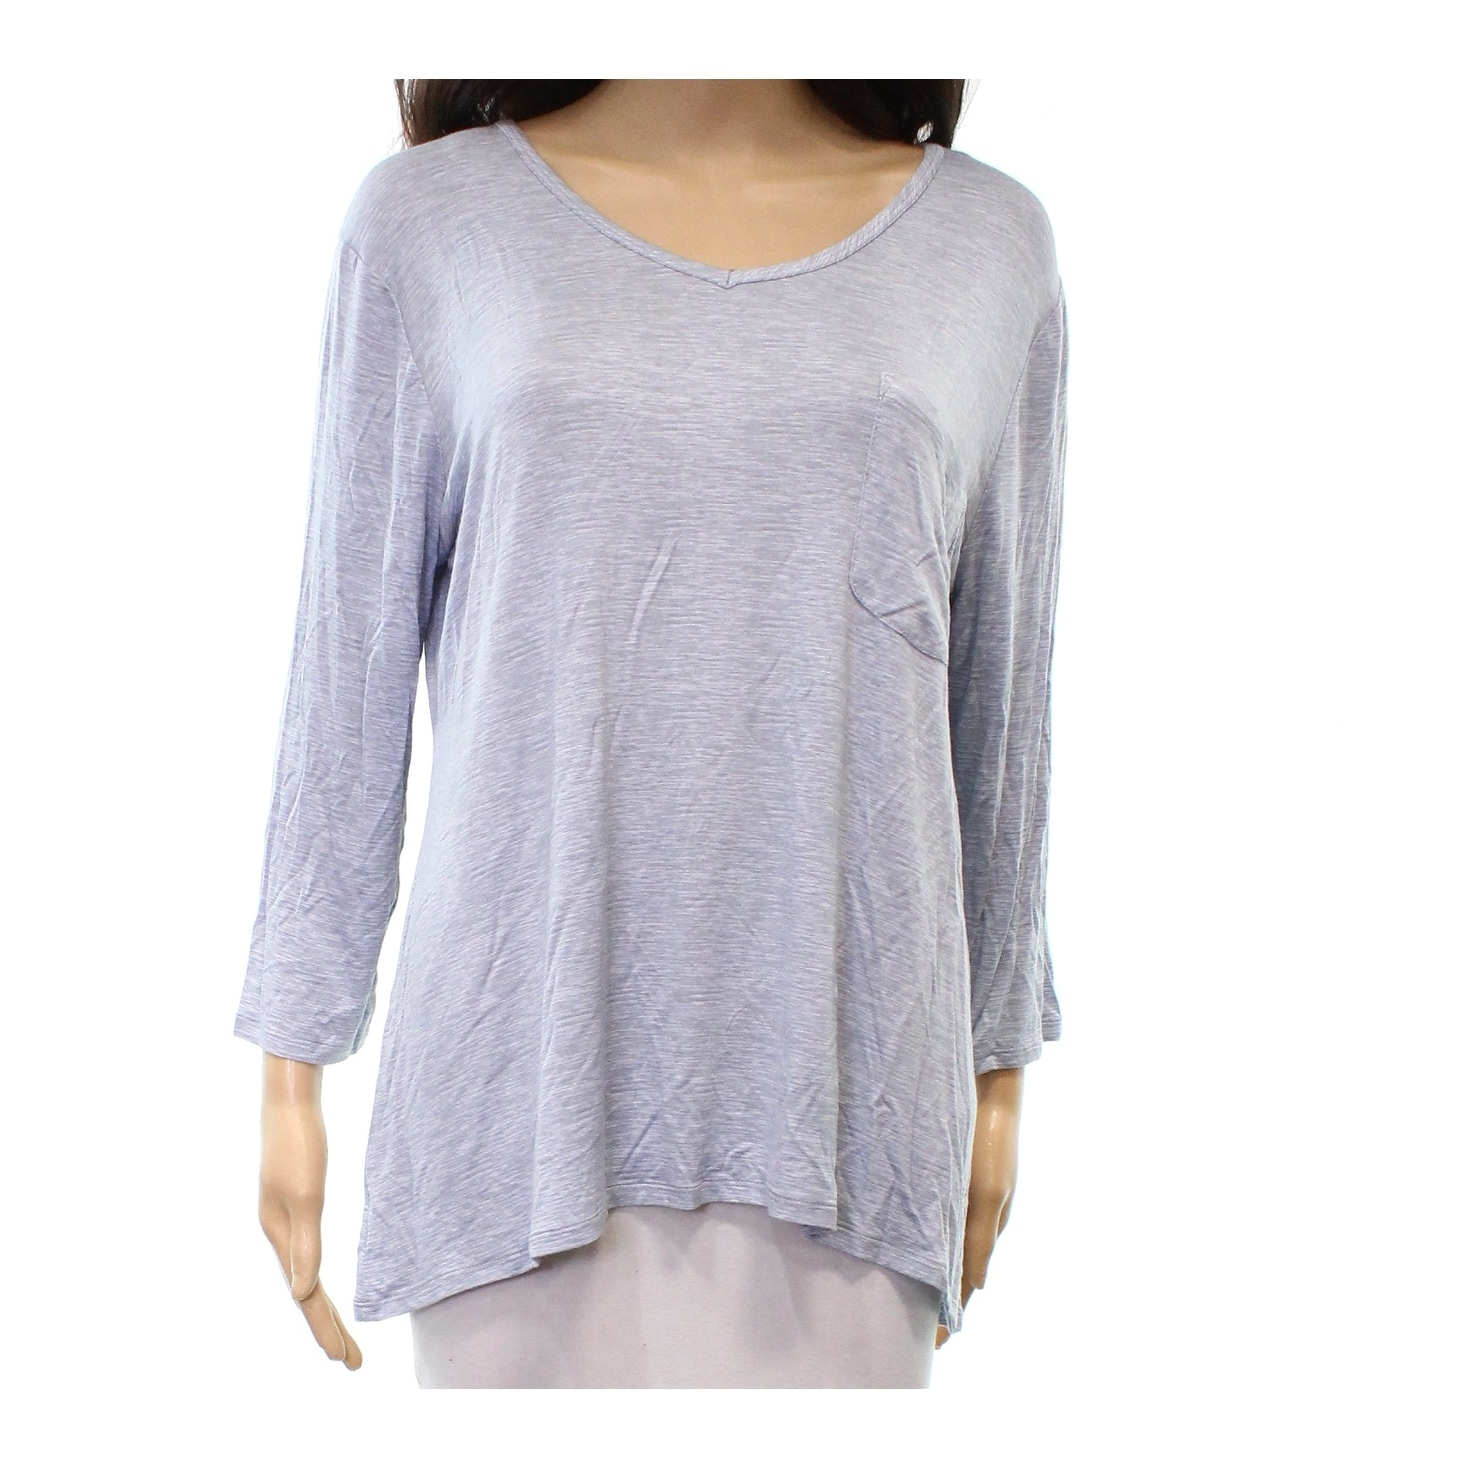 4c377668 Shop Nuit Rouge NEW Blue Women's Size Large L Basic Tee Pocketed Shirt - Free  Shipping On Orders Over $45 - Overstock.com - 20588027